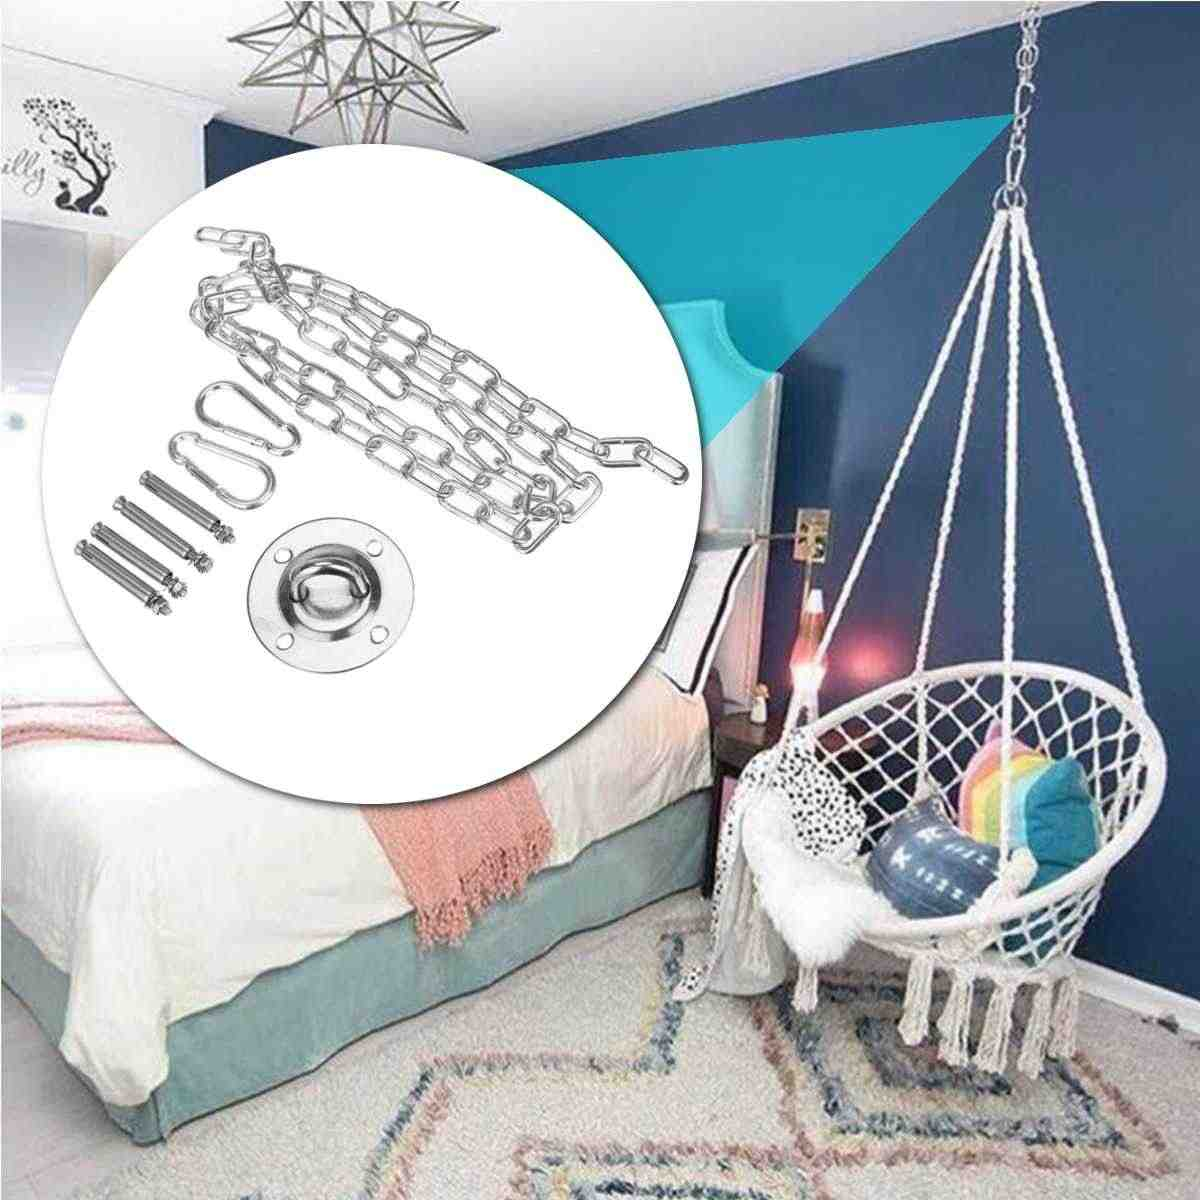 Hammock Mount Swing Hanging Trapeze Hanger Stainless Steel Base Ceiling Hooks Suspension Yoga Hammock Hanging Chair Accessories Aliexpress